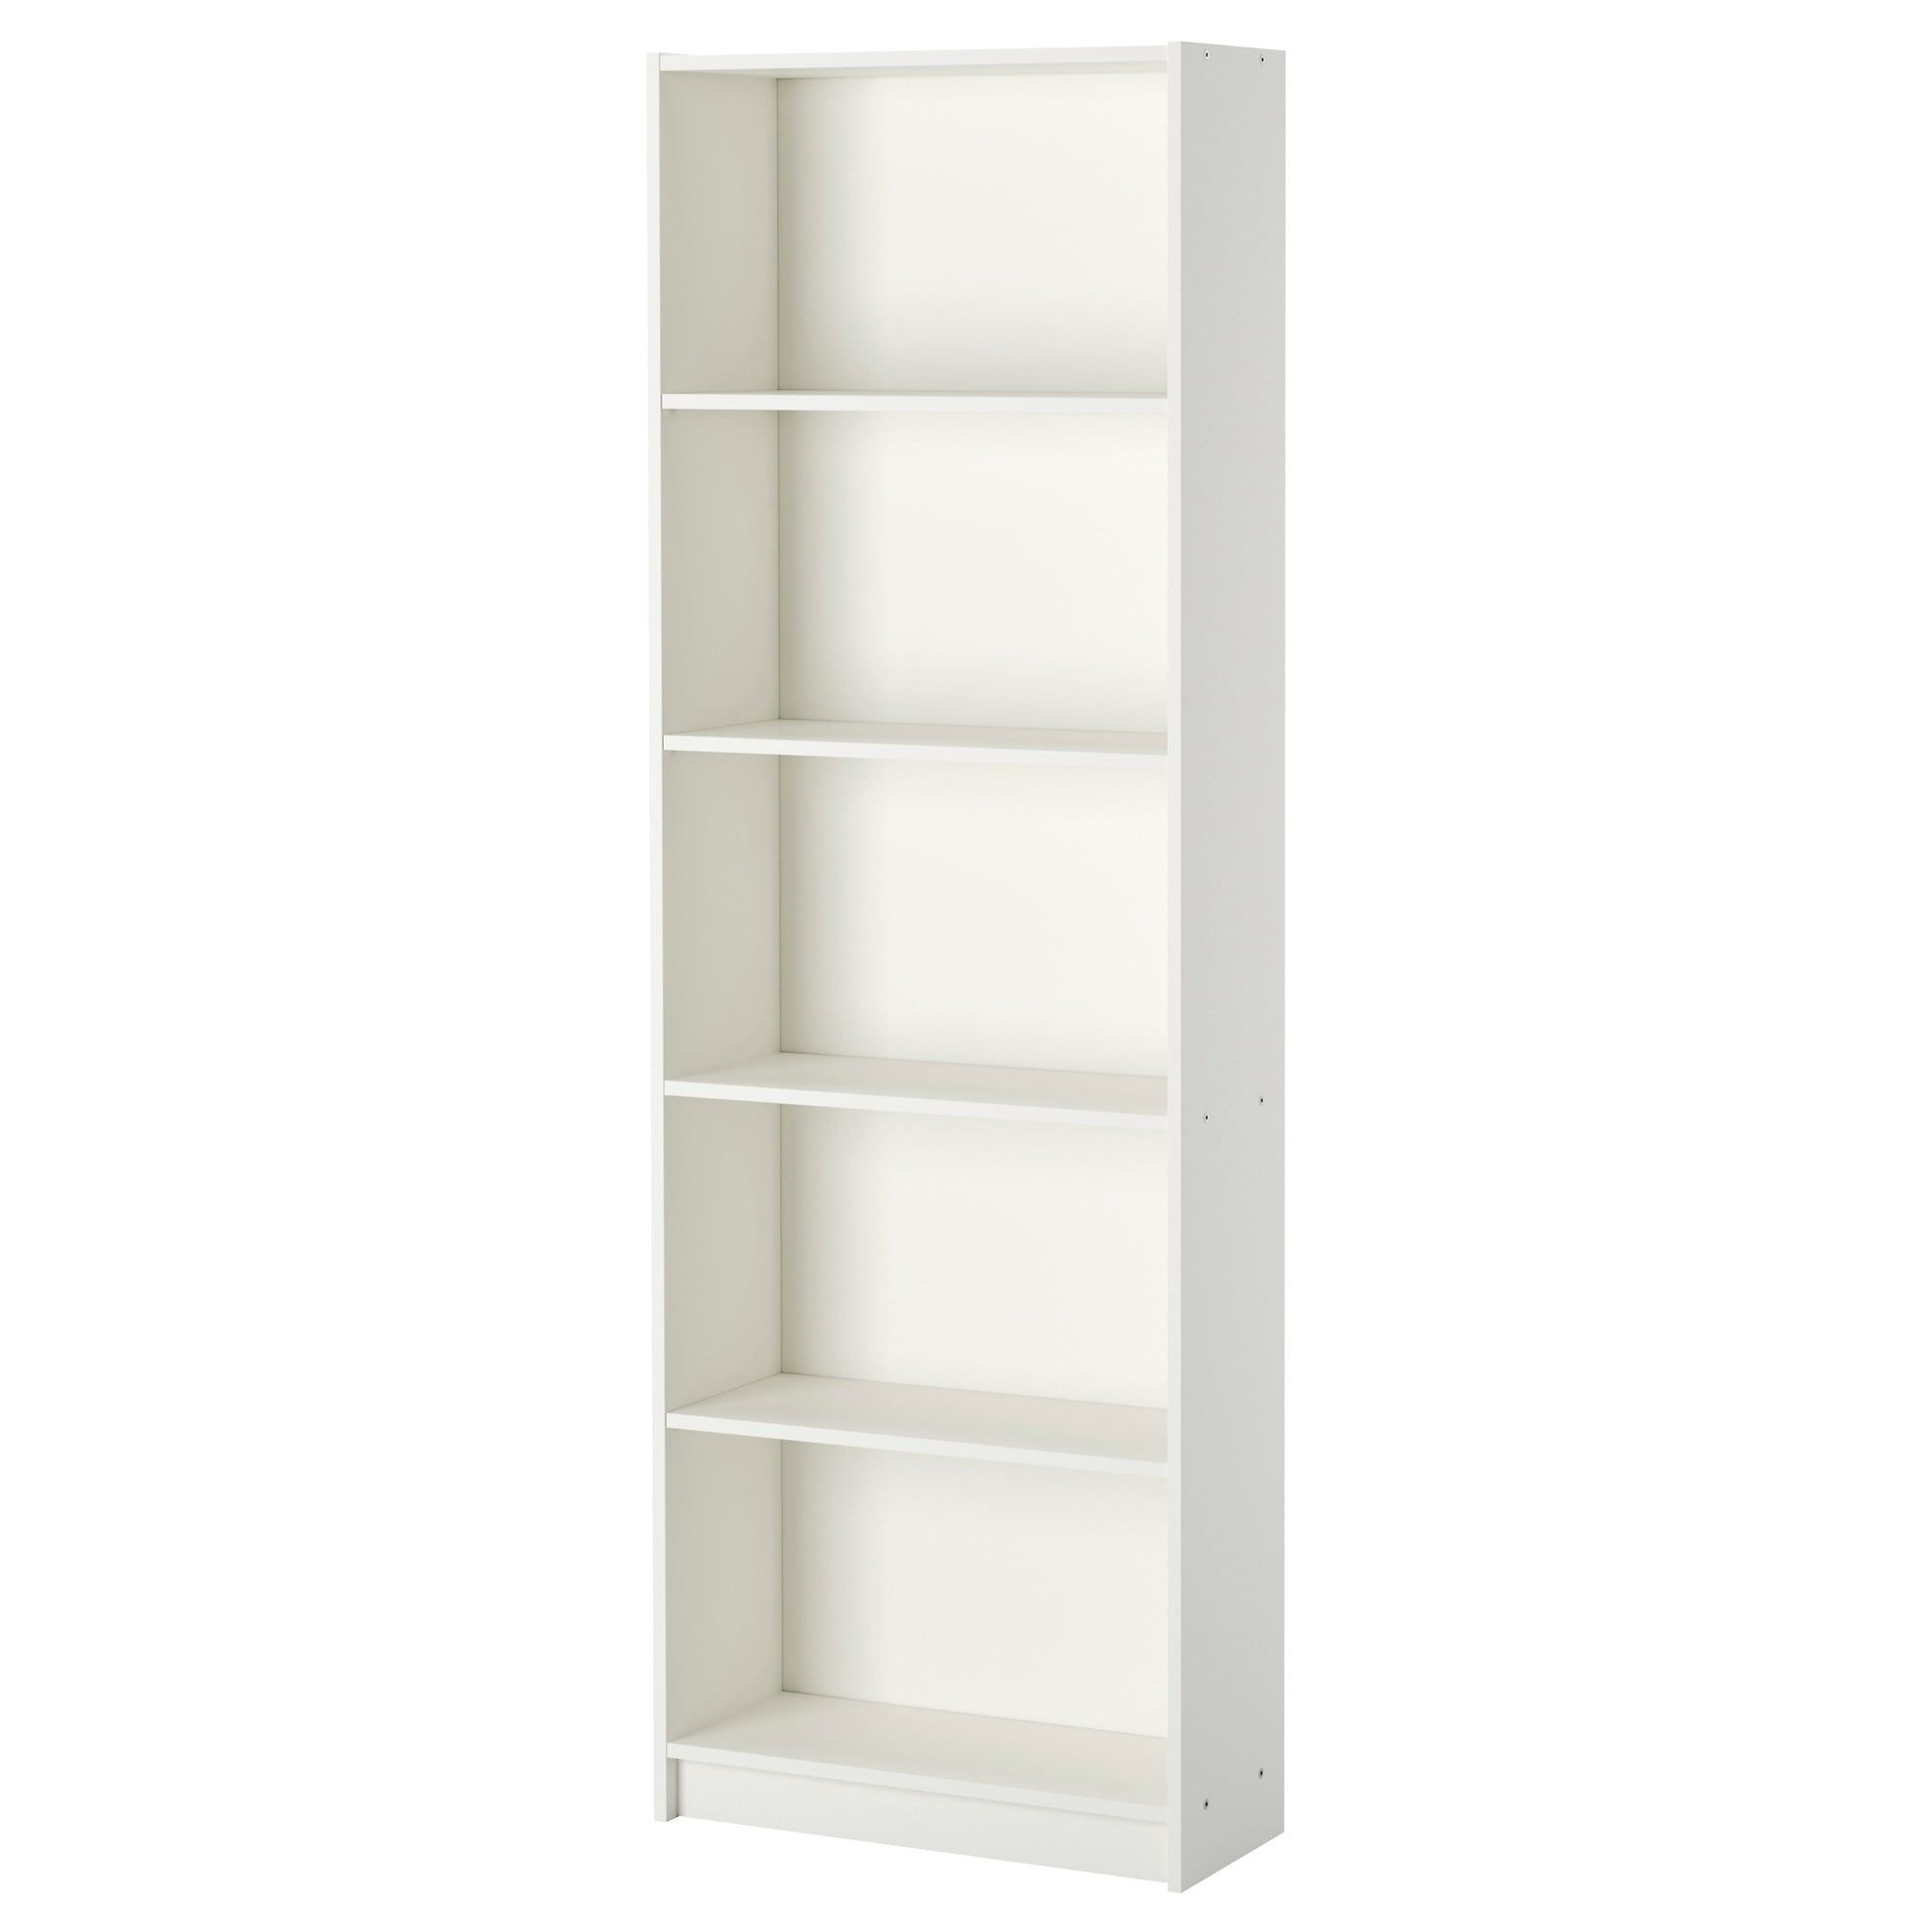 Weißes Bücherregal Gersby Bücherregal Weiß In 2019 Products Pinterest Ikea